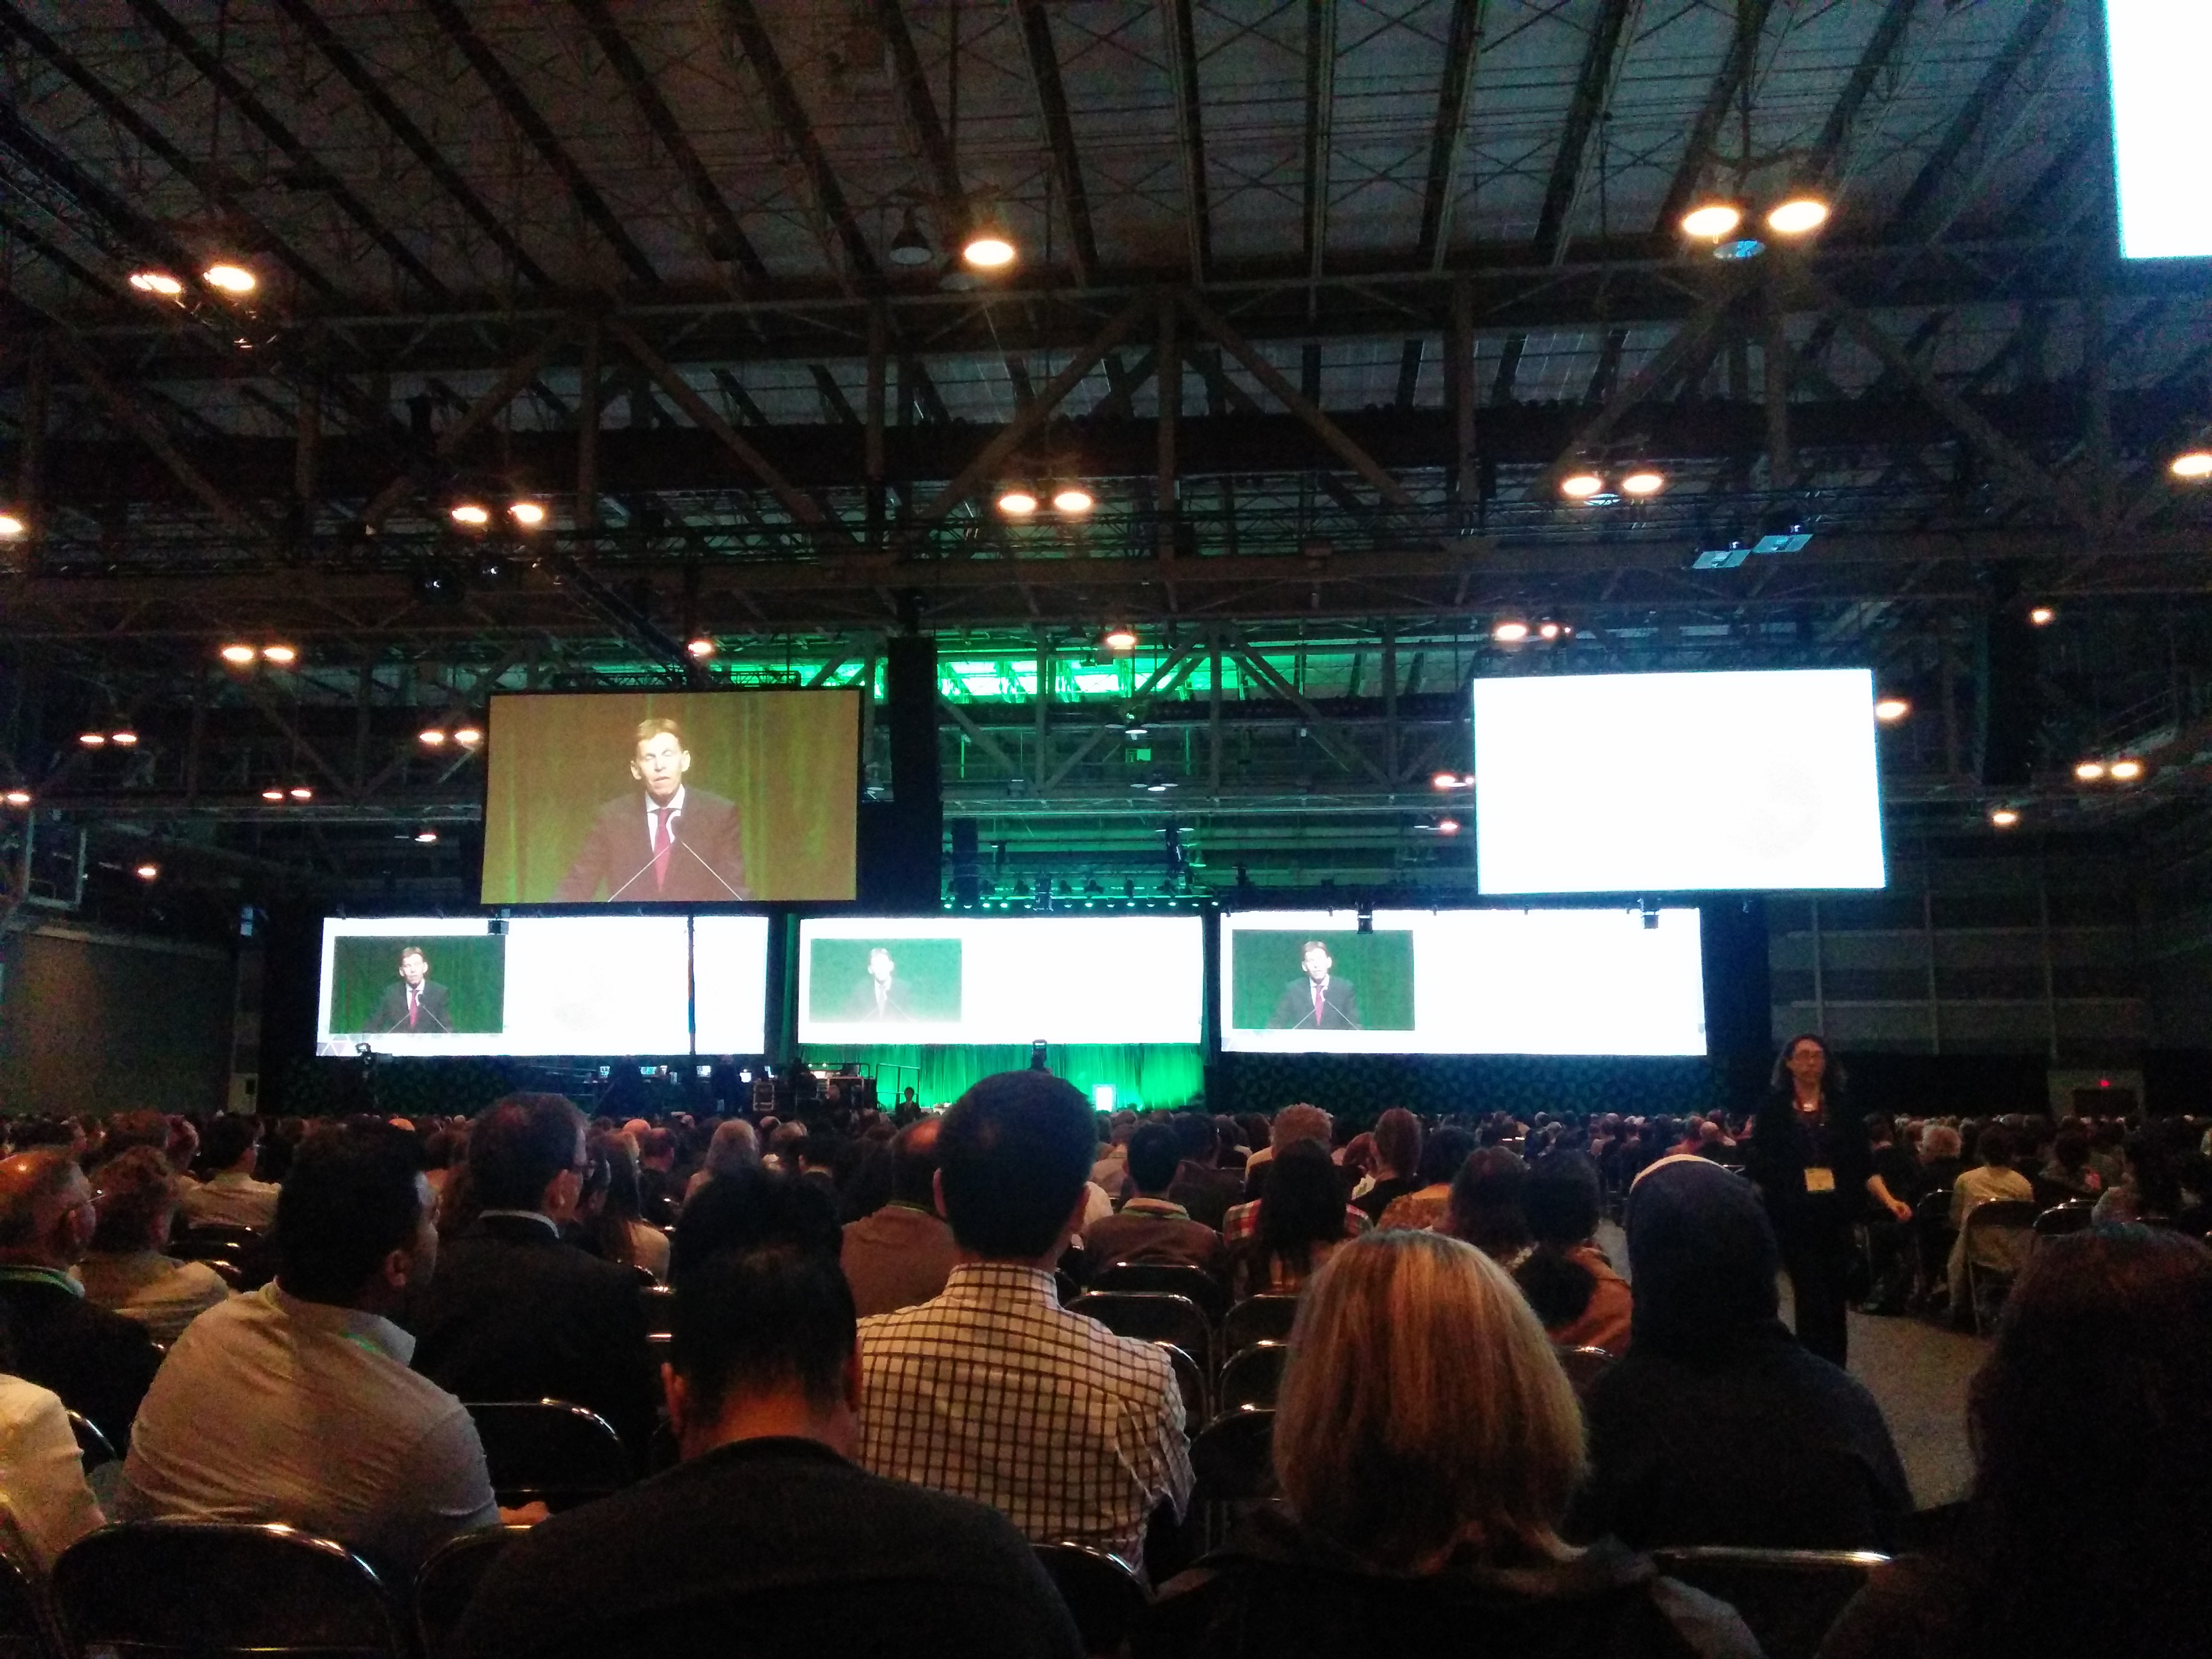 The plenary hall at AACR